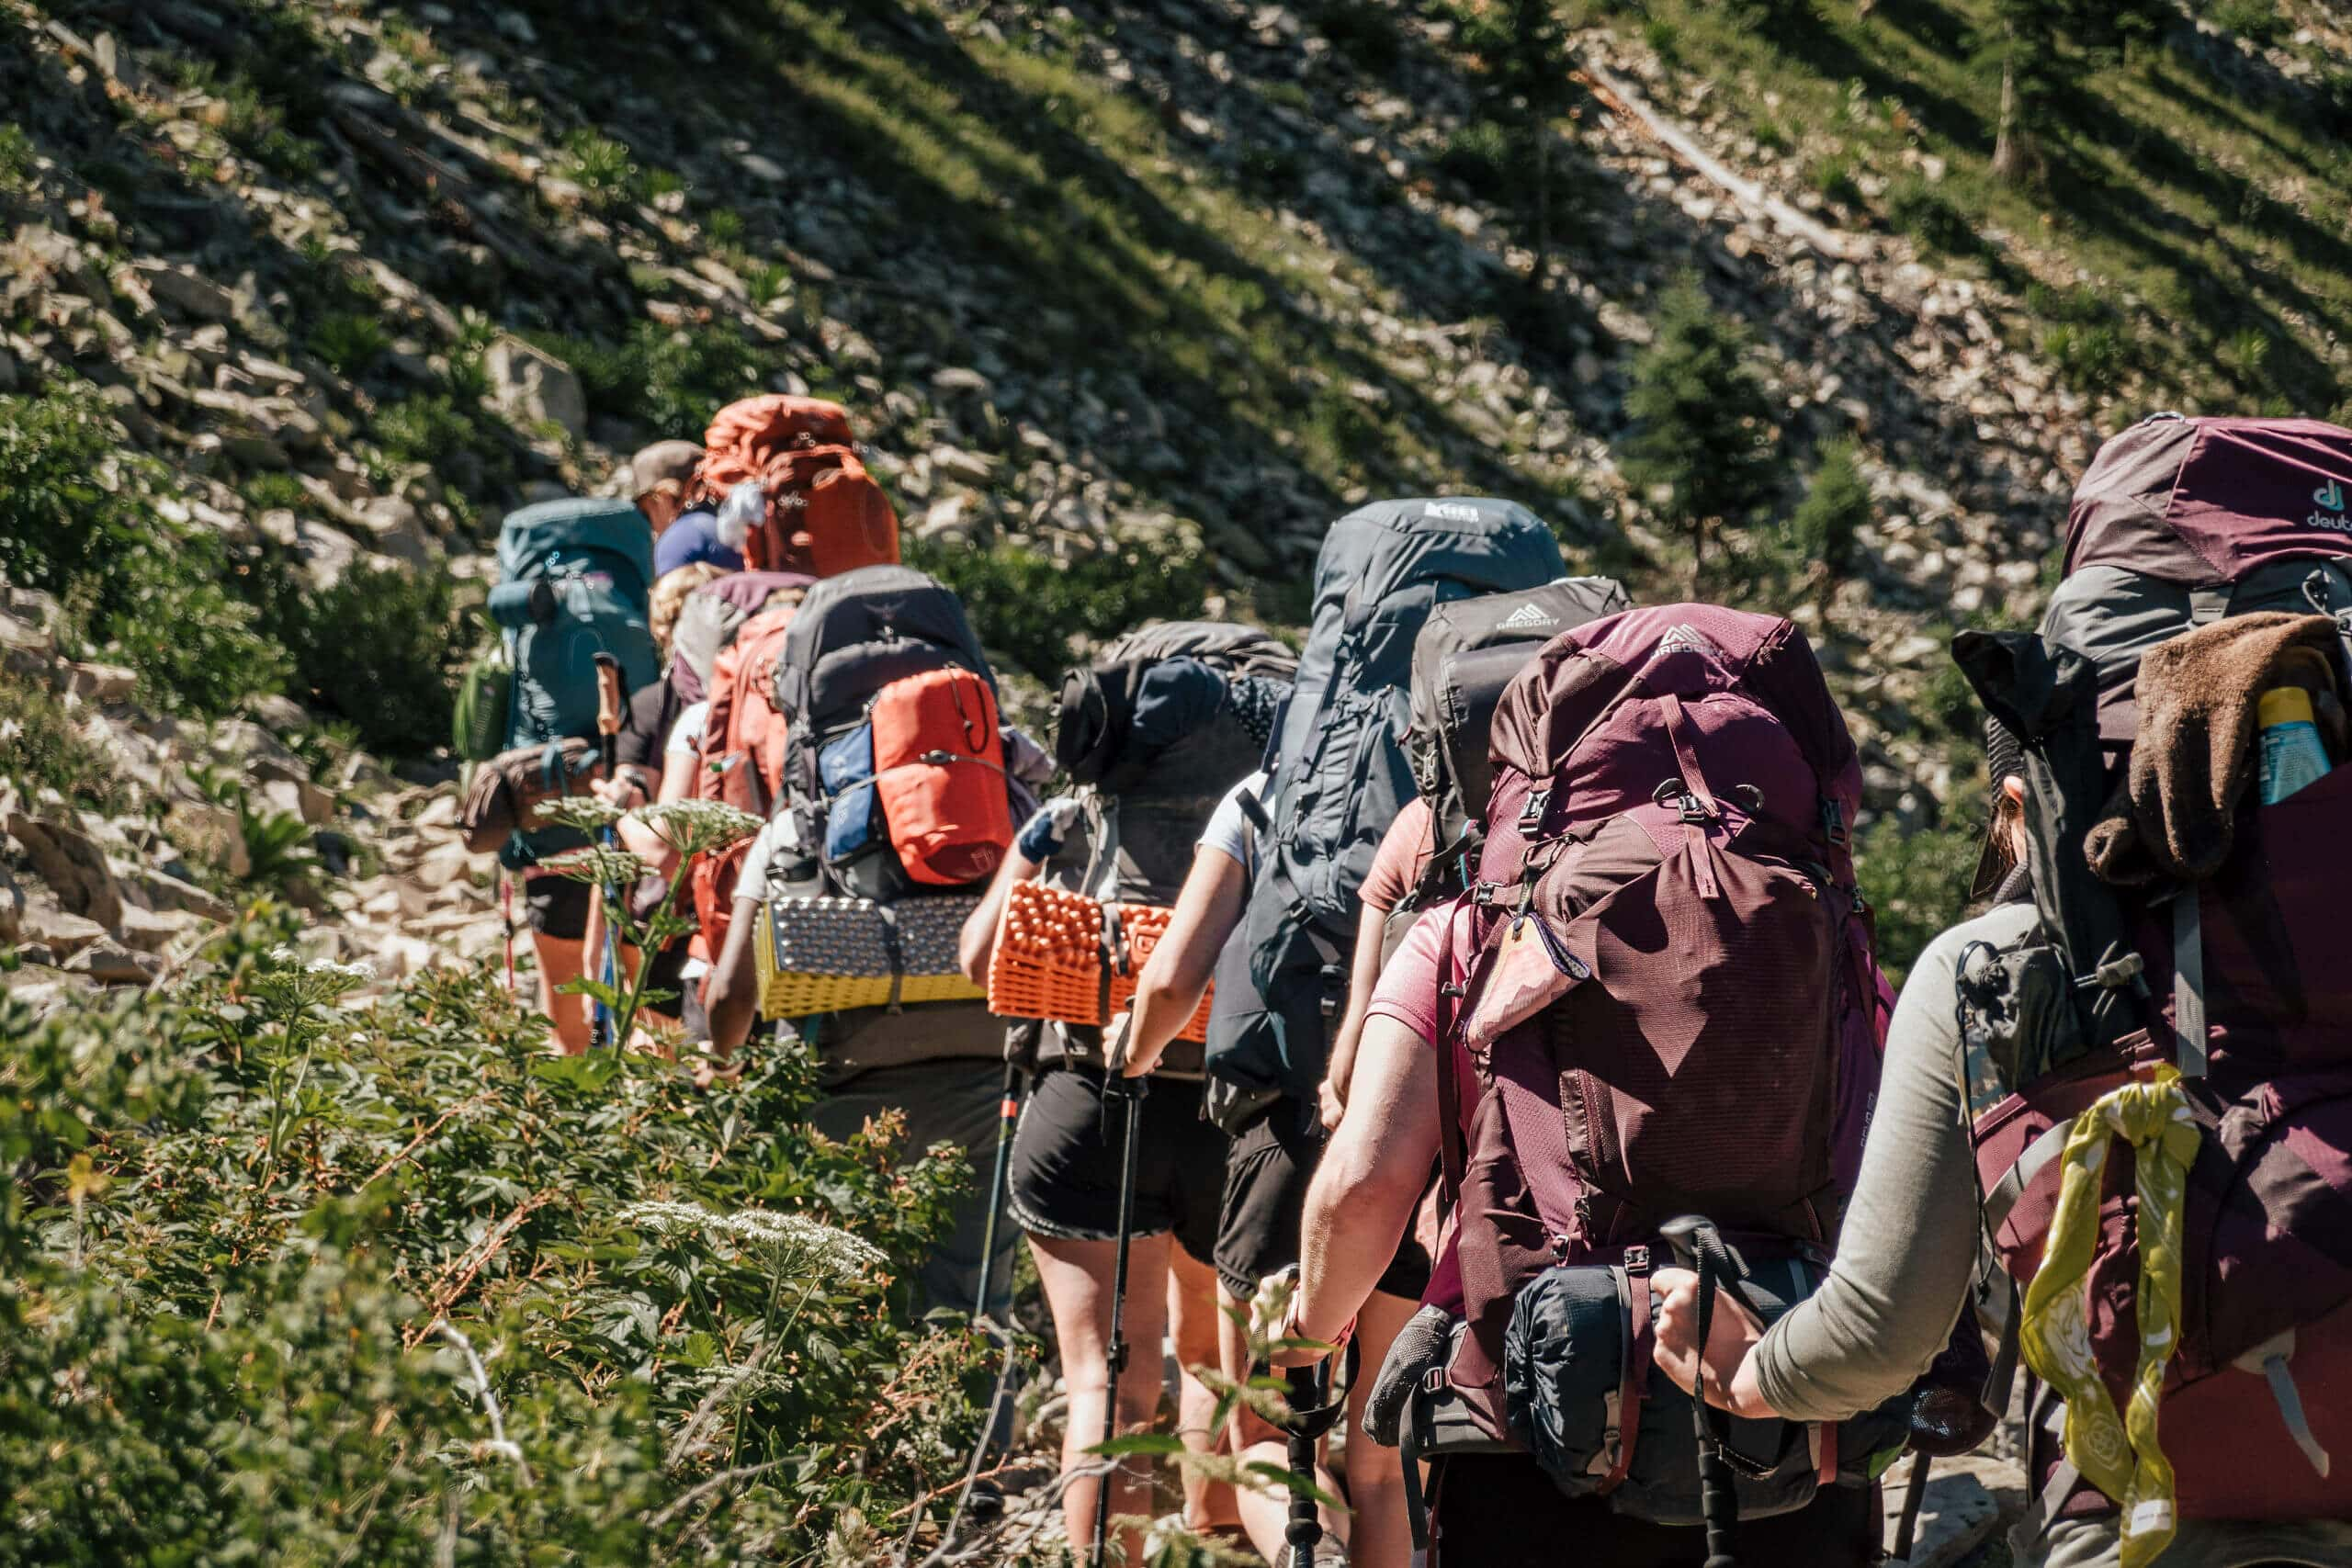 Backpackers in a line on Tents Without Gents trip